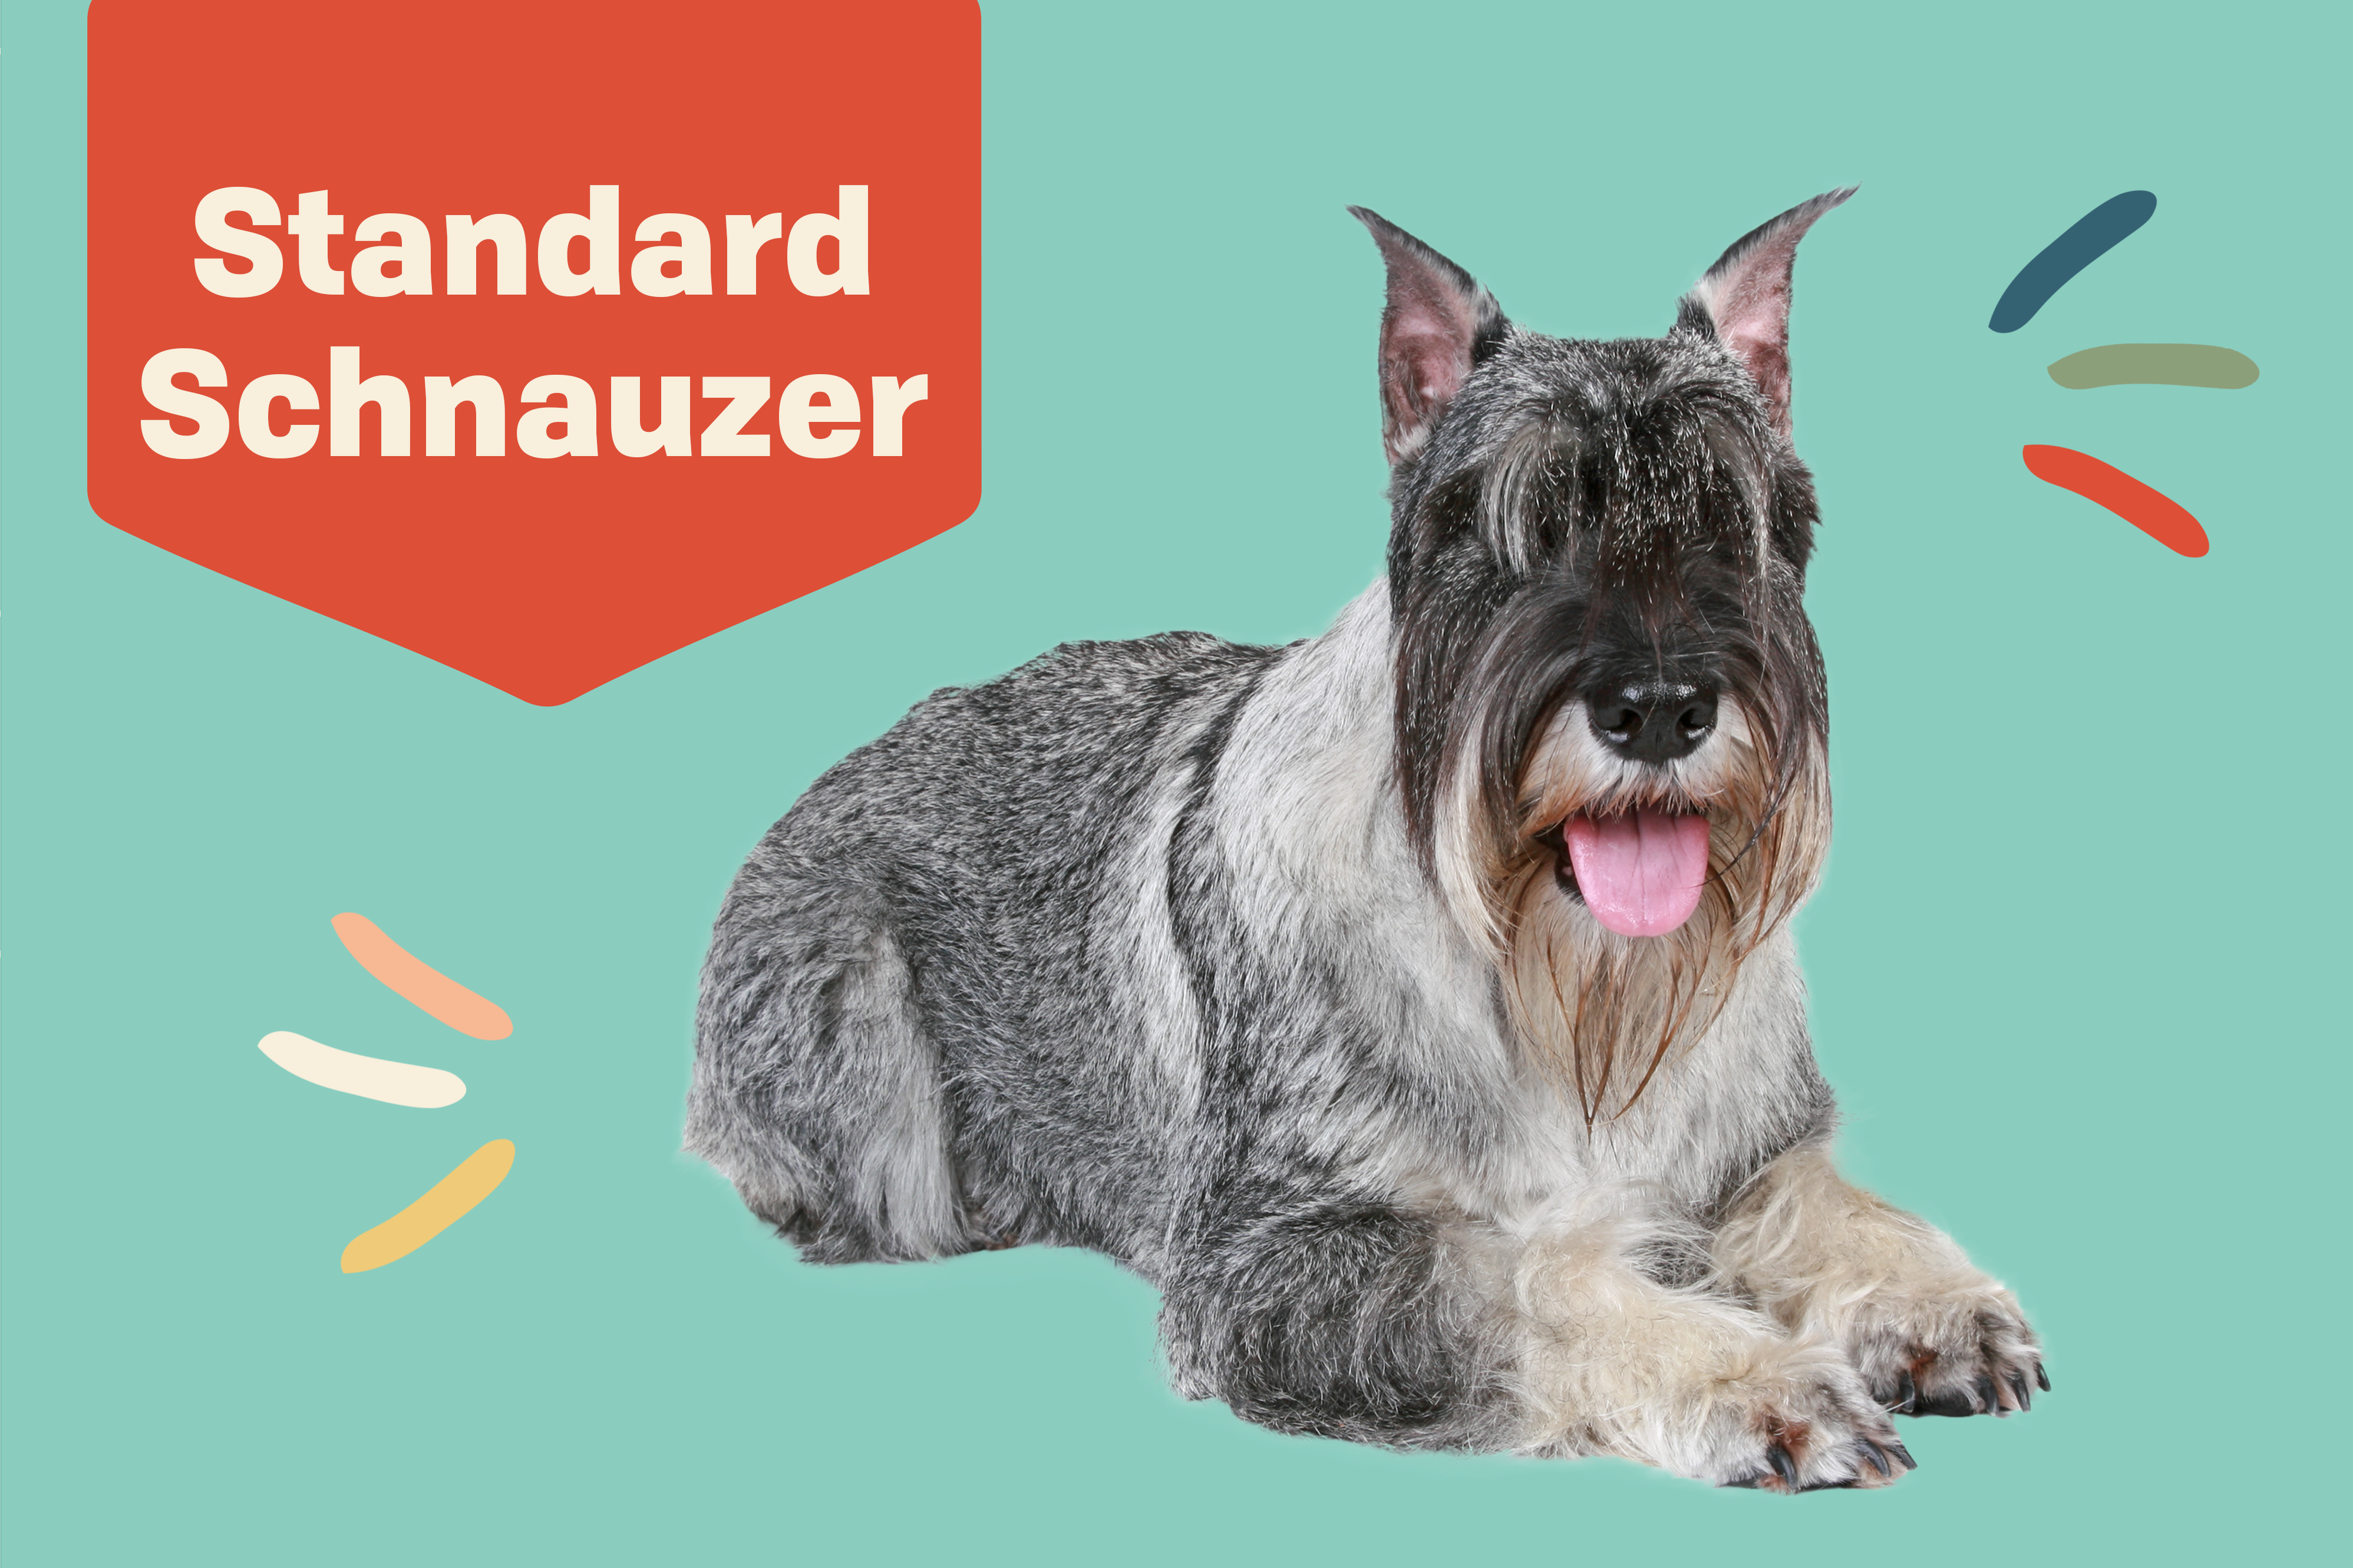 standard schnauzer dog breed proflie treatment with dog on teal background